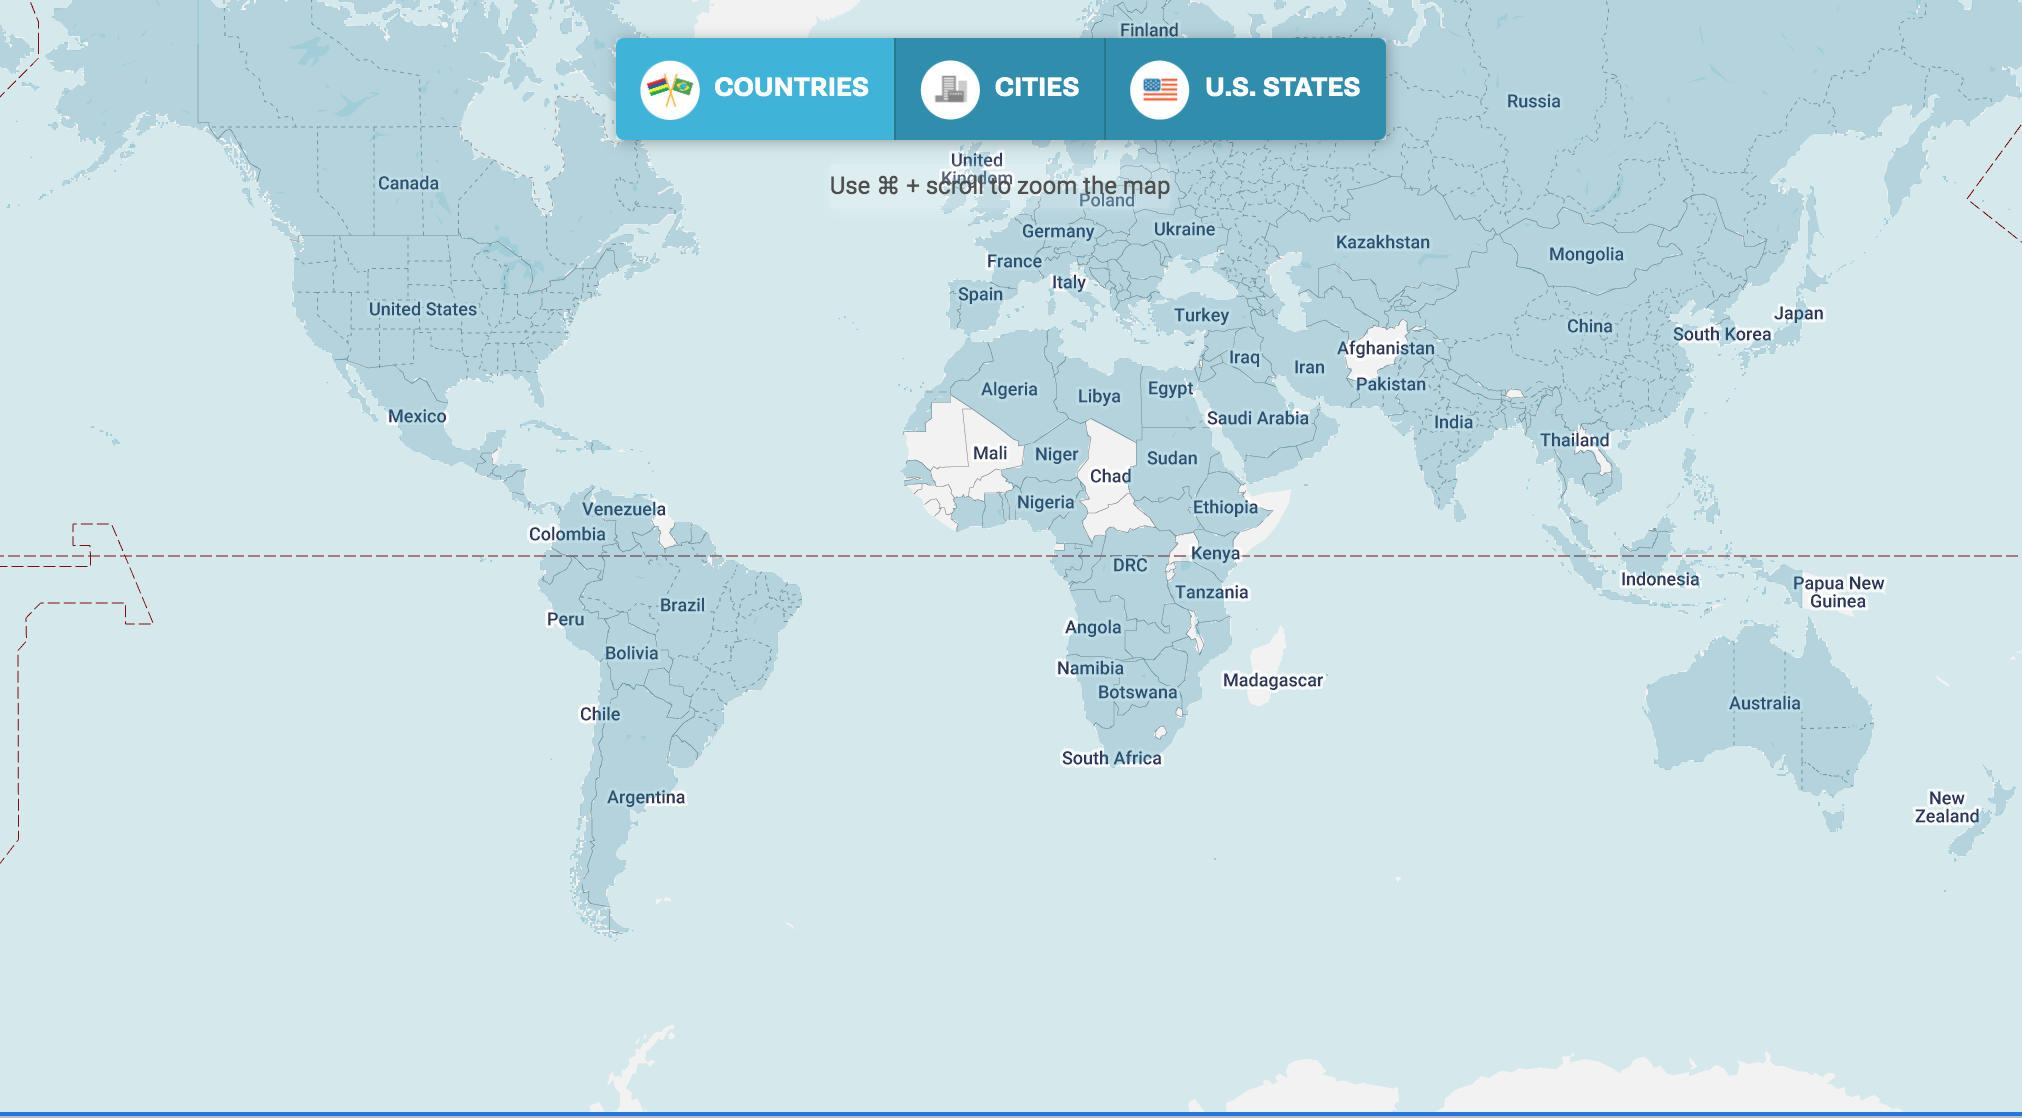 Image of customized world map showing the names of al the countries.